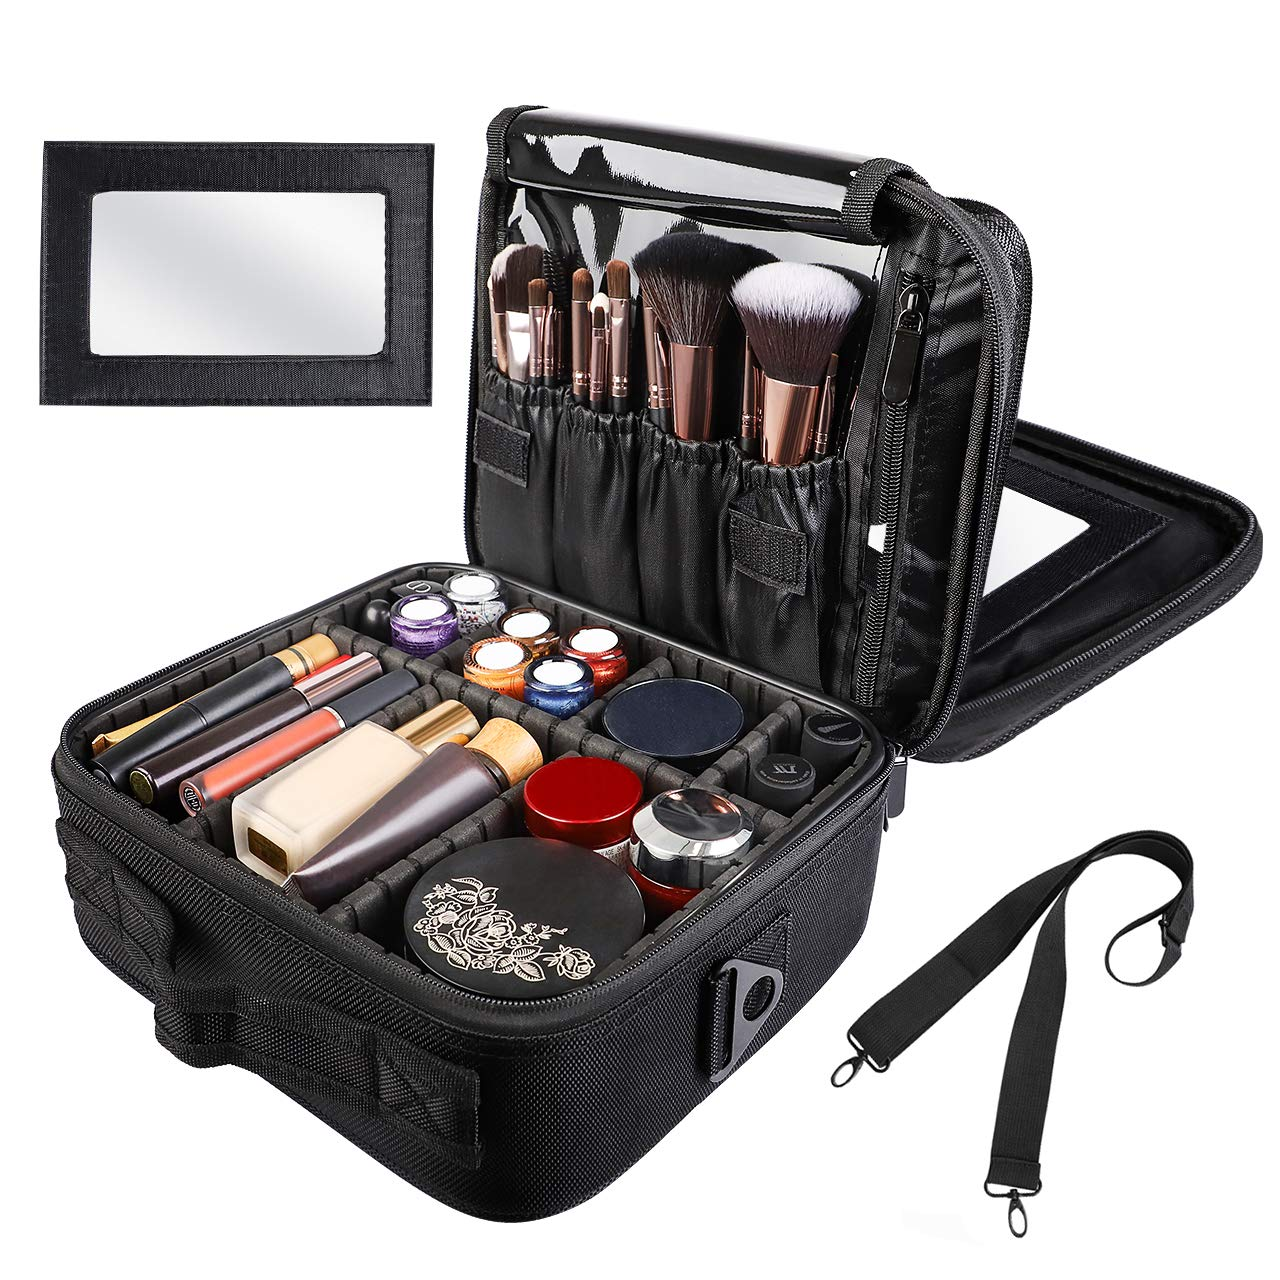 Kootek Travel Makeup Bag Double-Layer Portable Train Cosmetic Case Organizer with Mirror Shoulder Strap Adjustable Dividers for Cosmetics Makeup Brushes Toiletry Jewelry Digital Accessories by Kootek